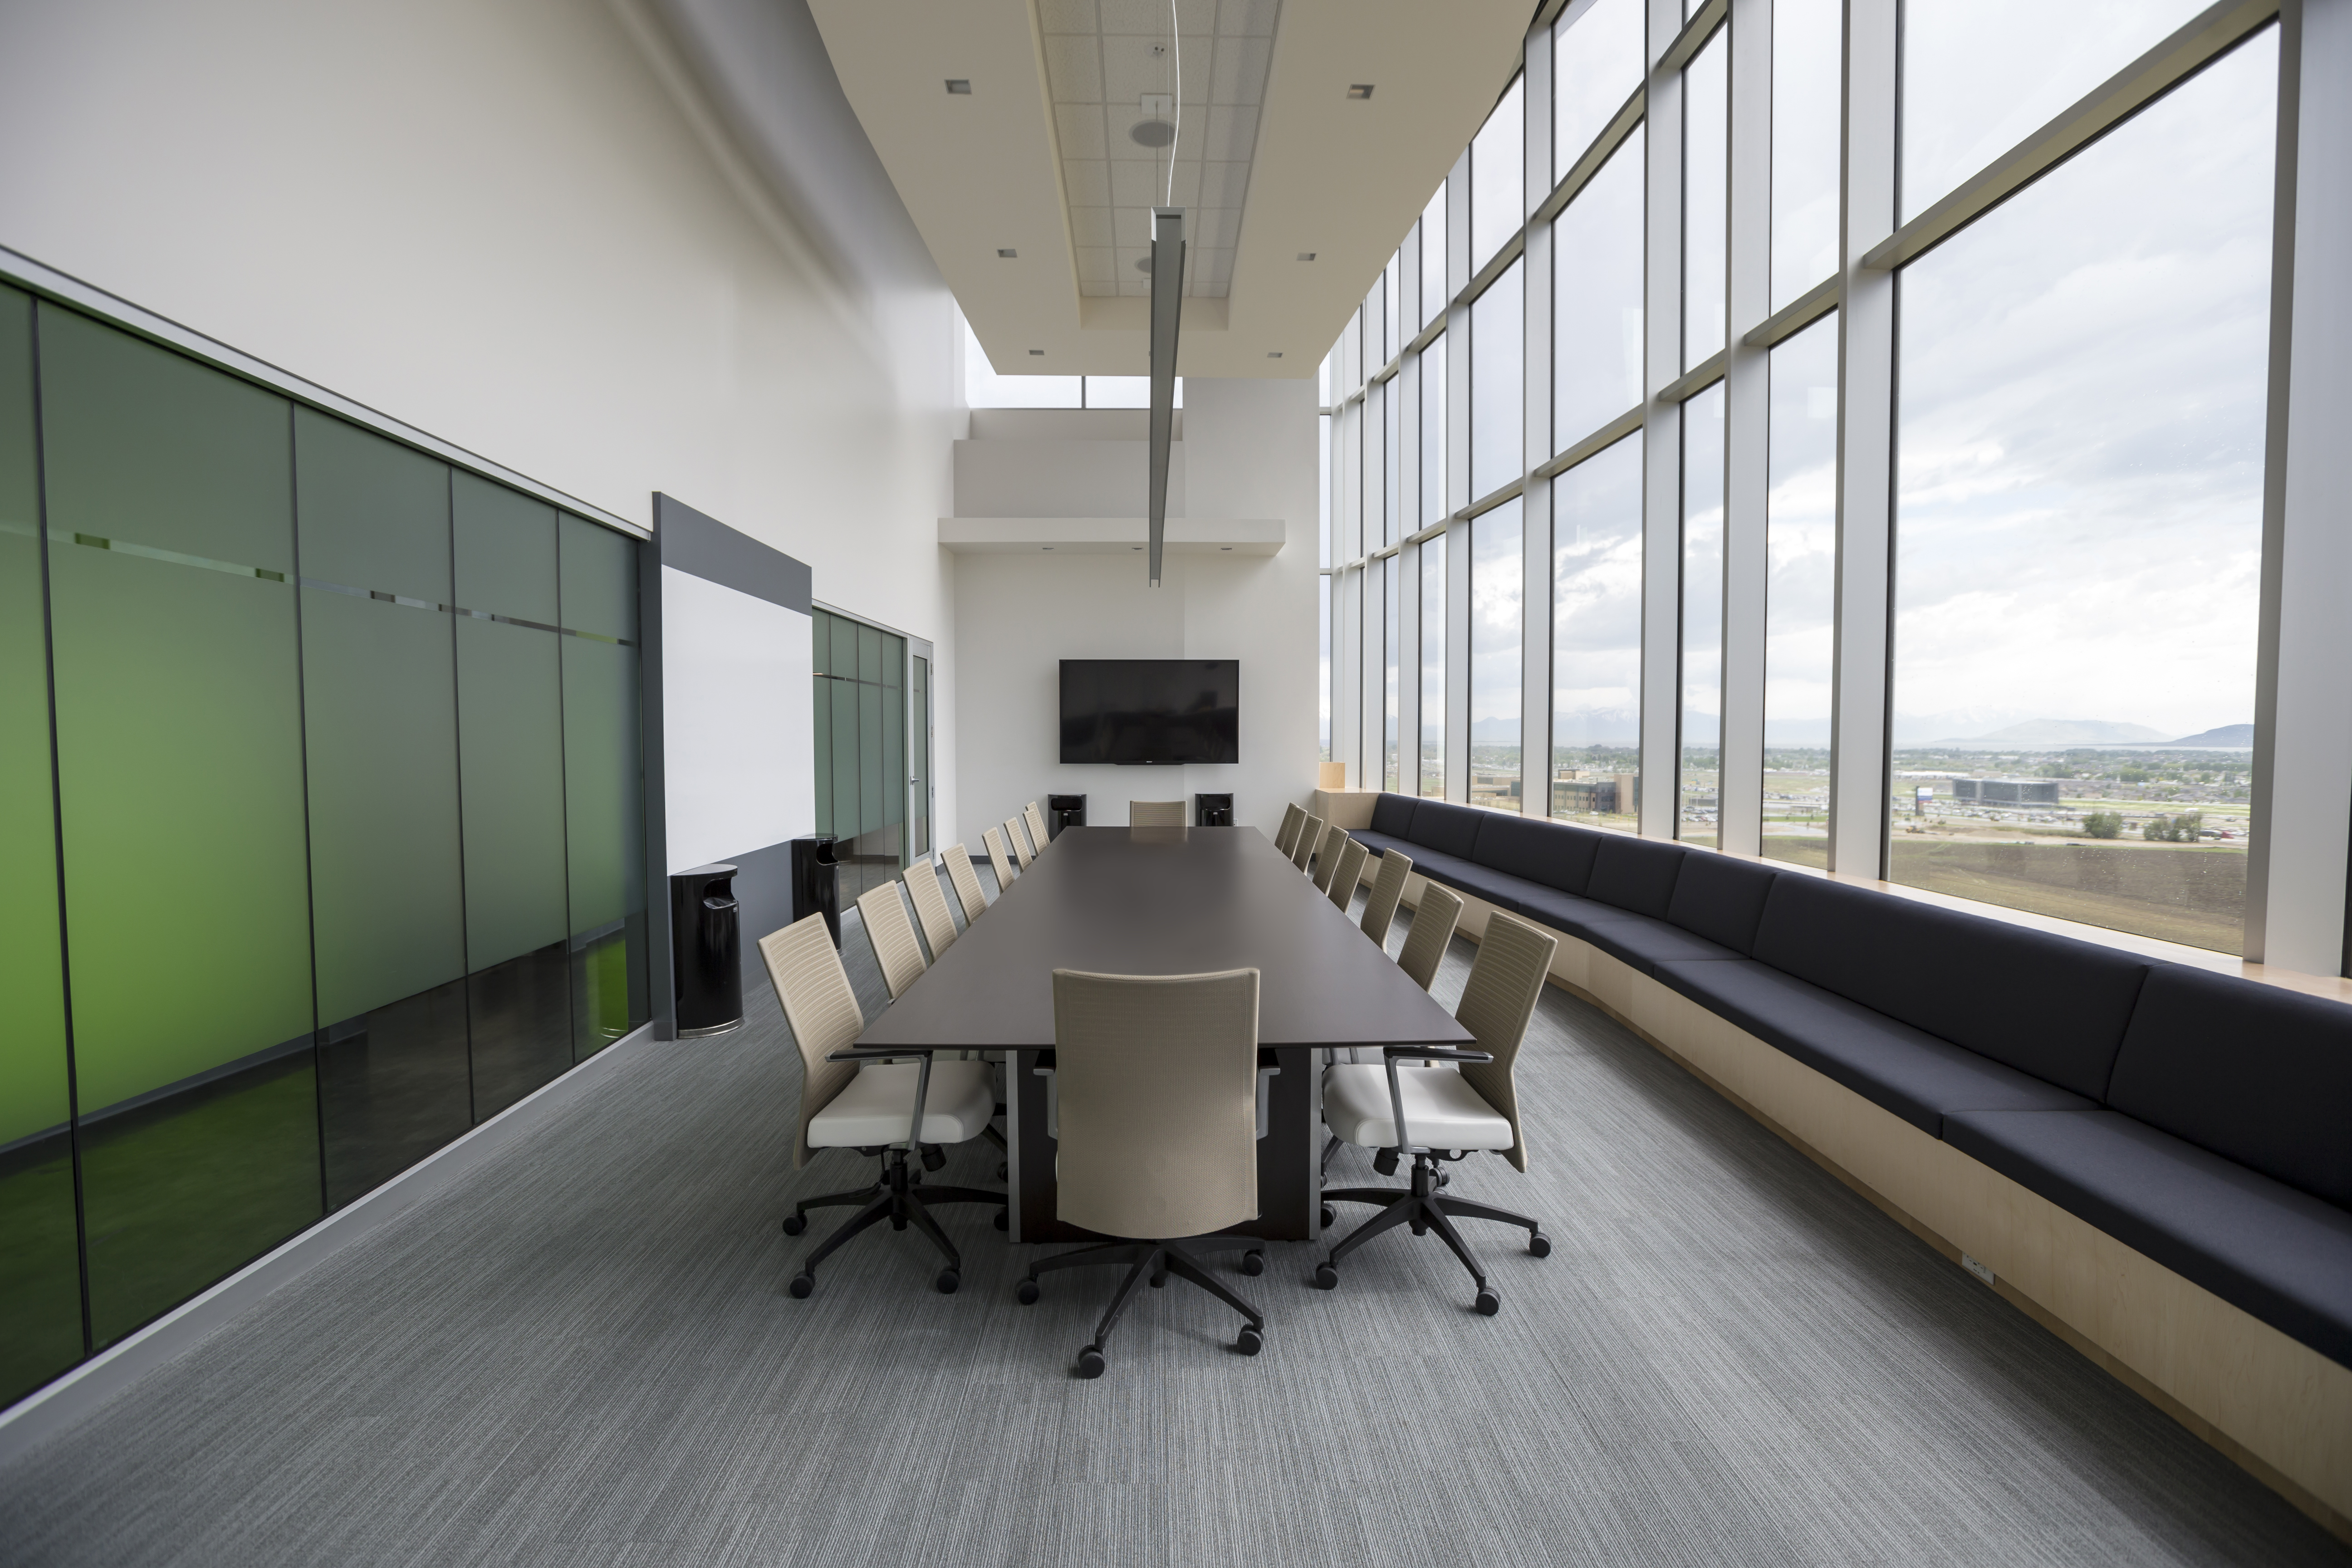 An empty elegant boardroom with a long table and tall windows